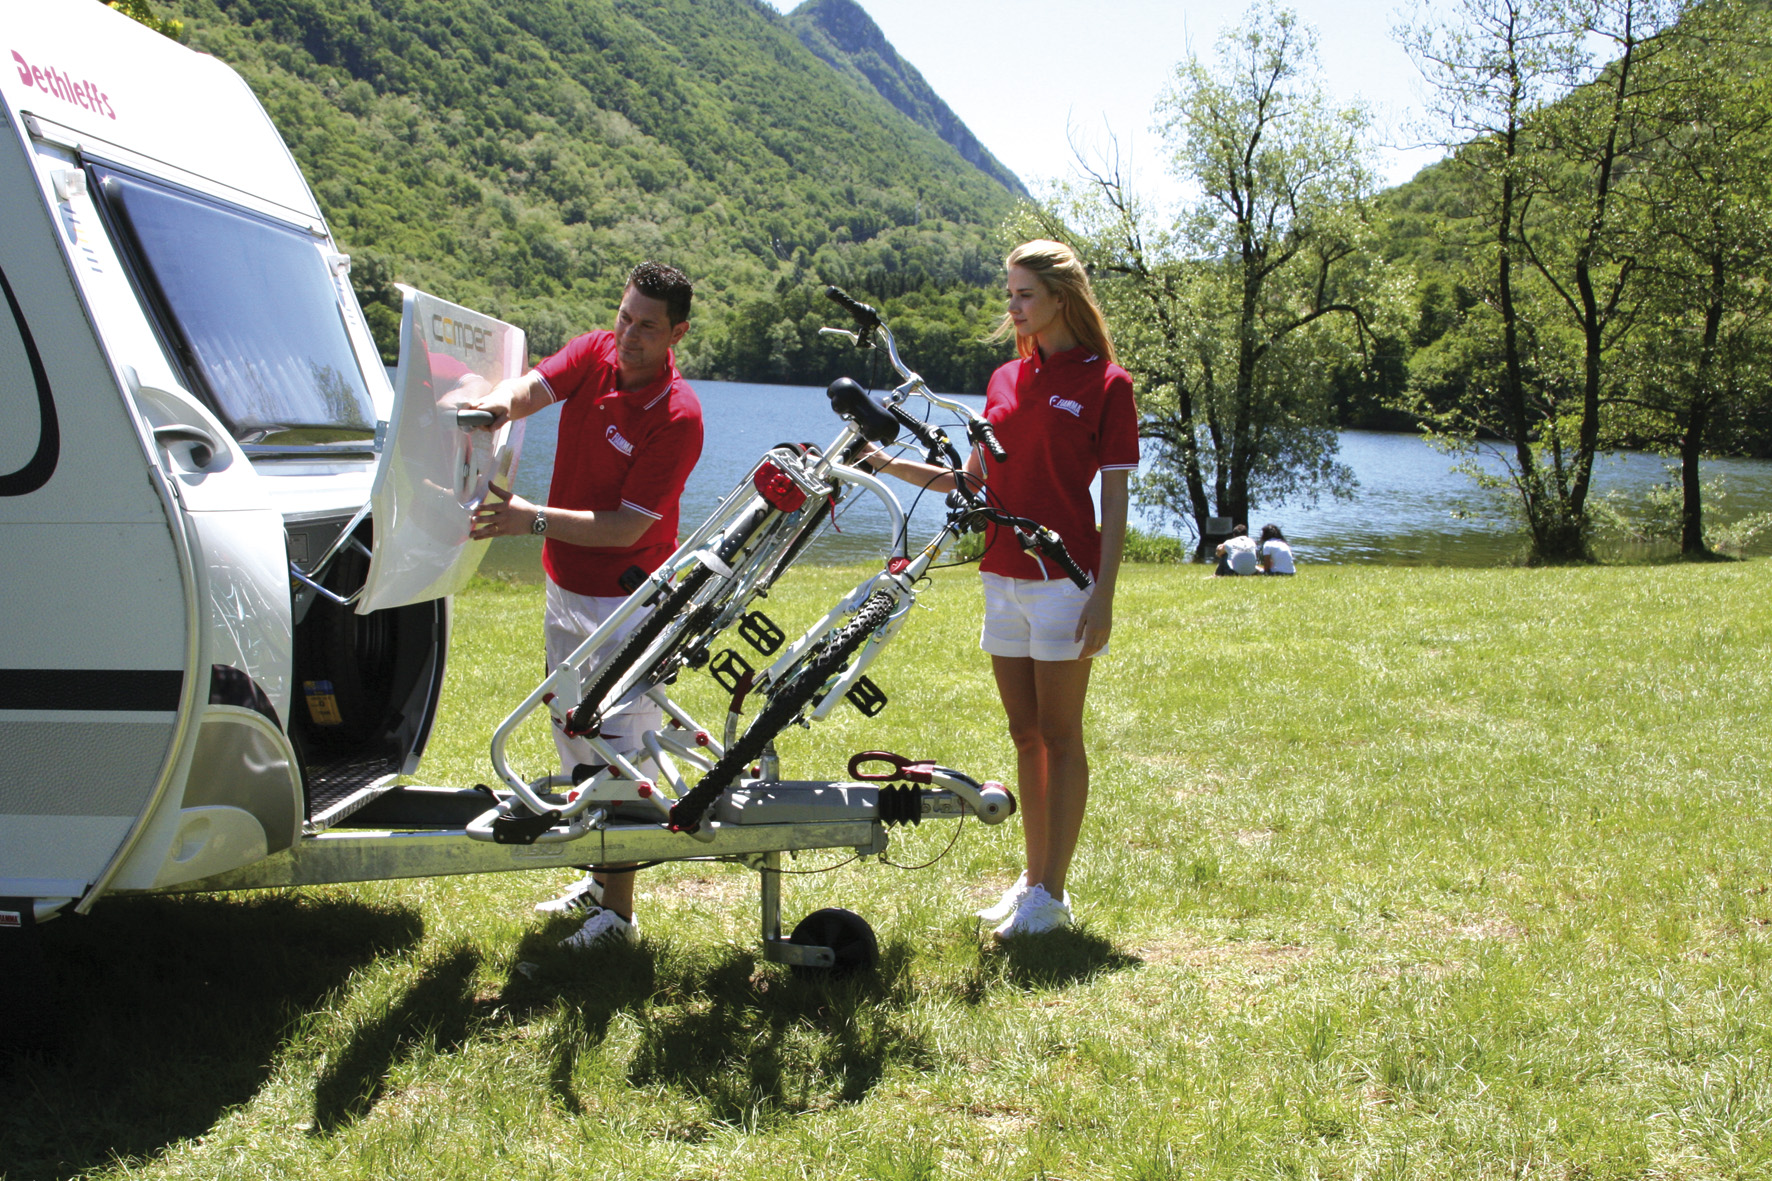 Fiamma Bike Racks and Carriers for Caravans